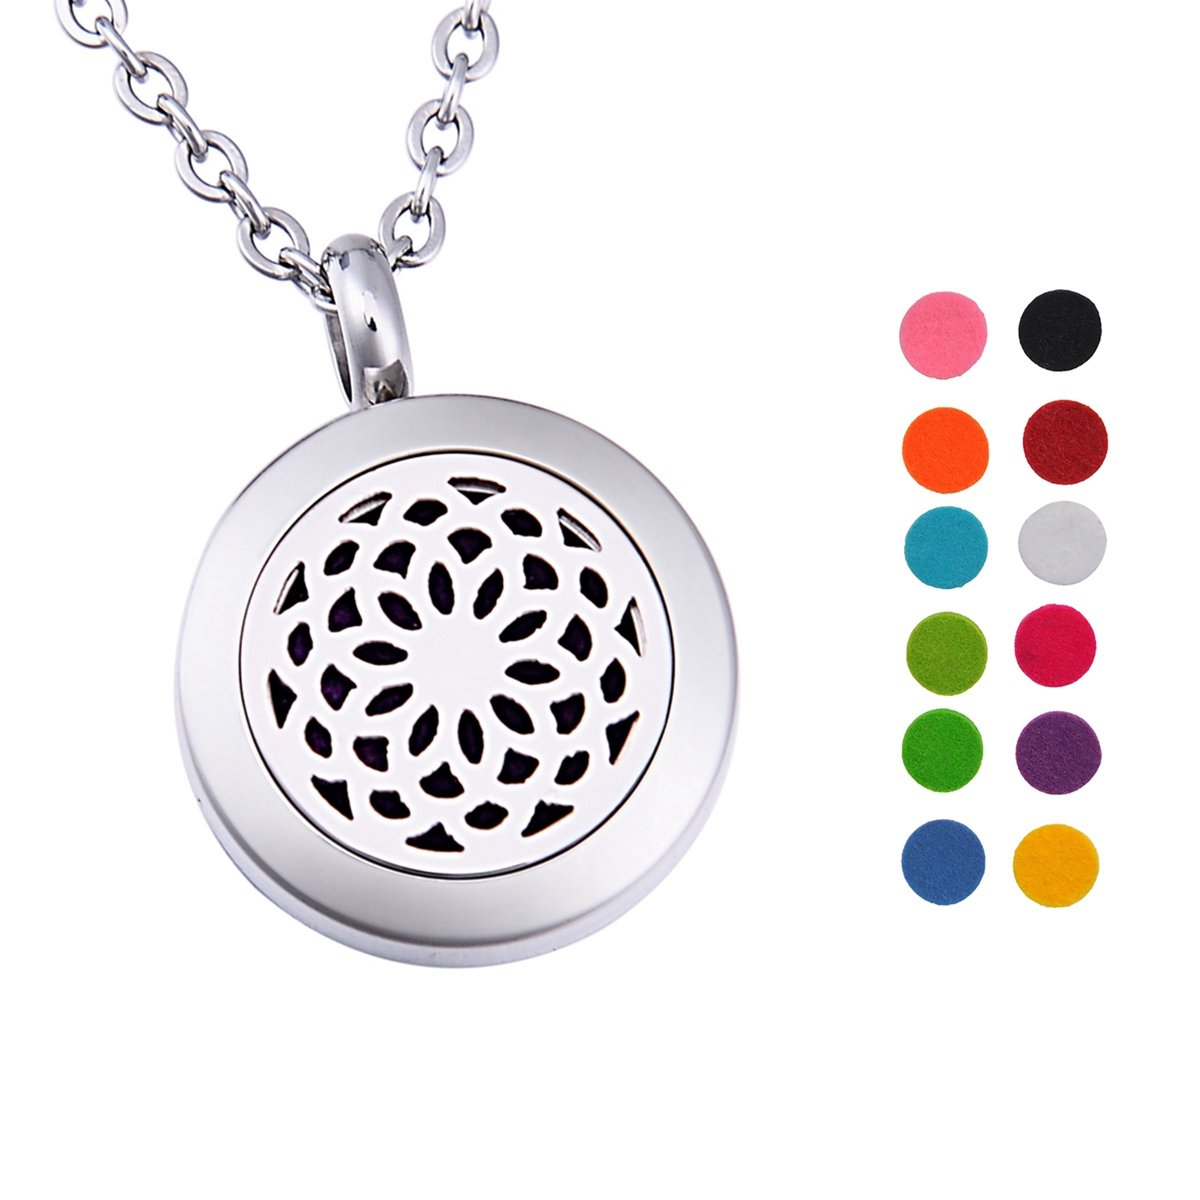 Personalized Birthstone Essential Oil Diffuser Necklace Sunflower Locket Pendant Jewelry Silver Tone Supreme glory SGto-B268427